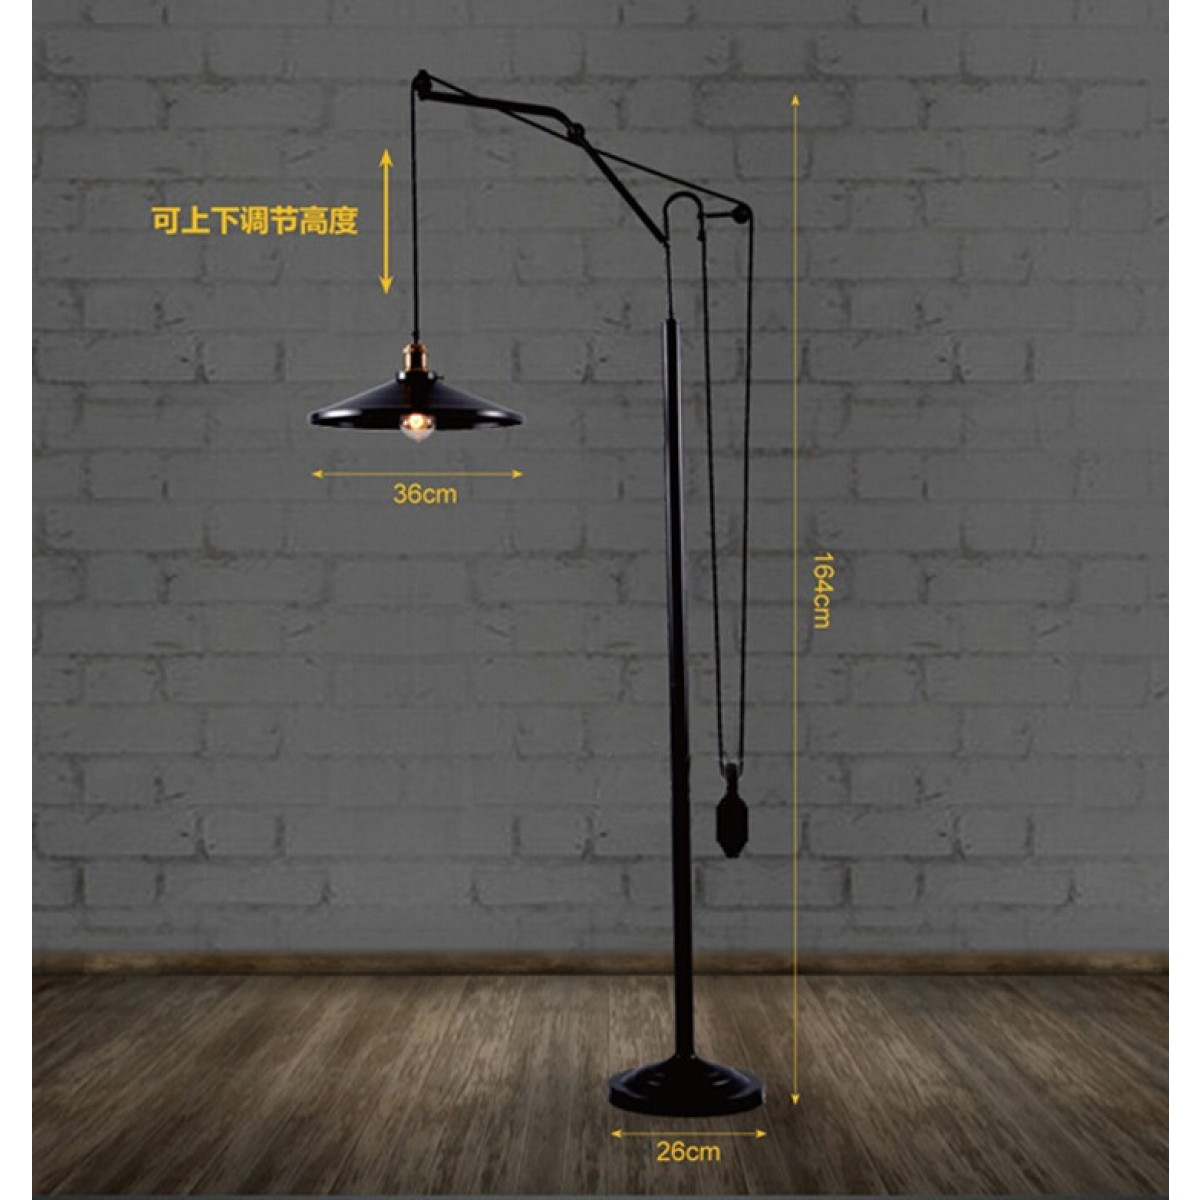 Floor Lamp For Hotel And Office Room In